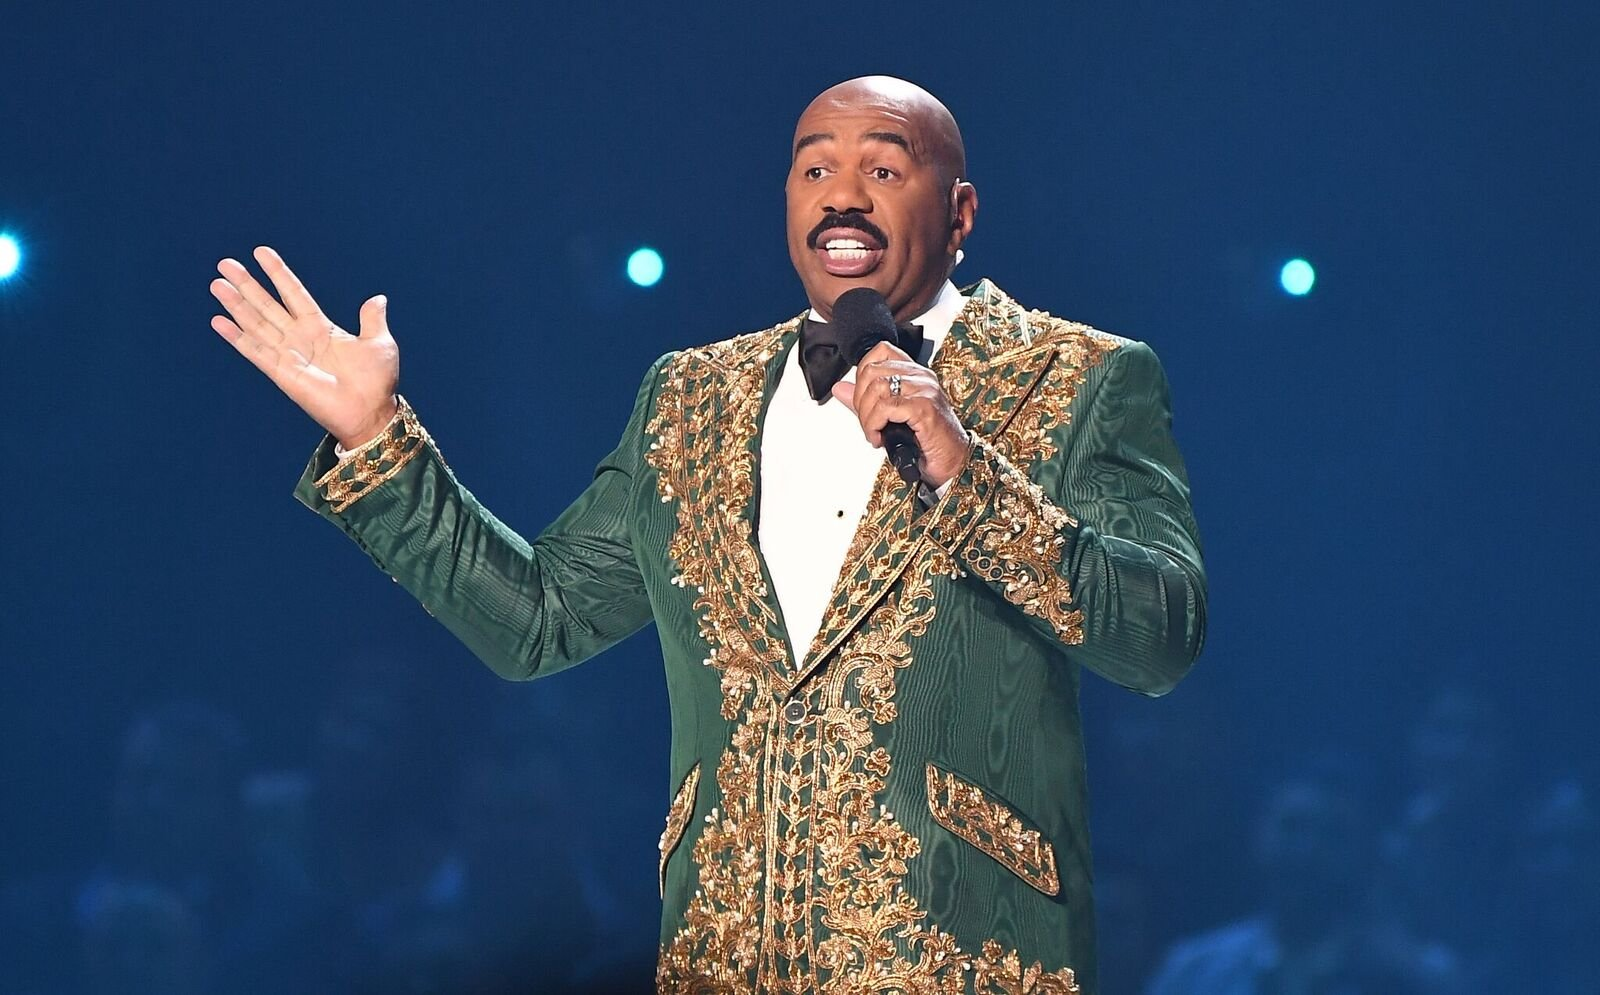 Steve Harvey speaks onstage during 2019 Miss Universe Pageant at Tyler Perry Studios on December 08, 2019 | Photo: Getty Images